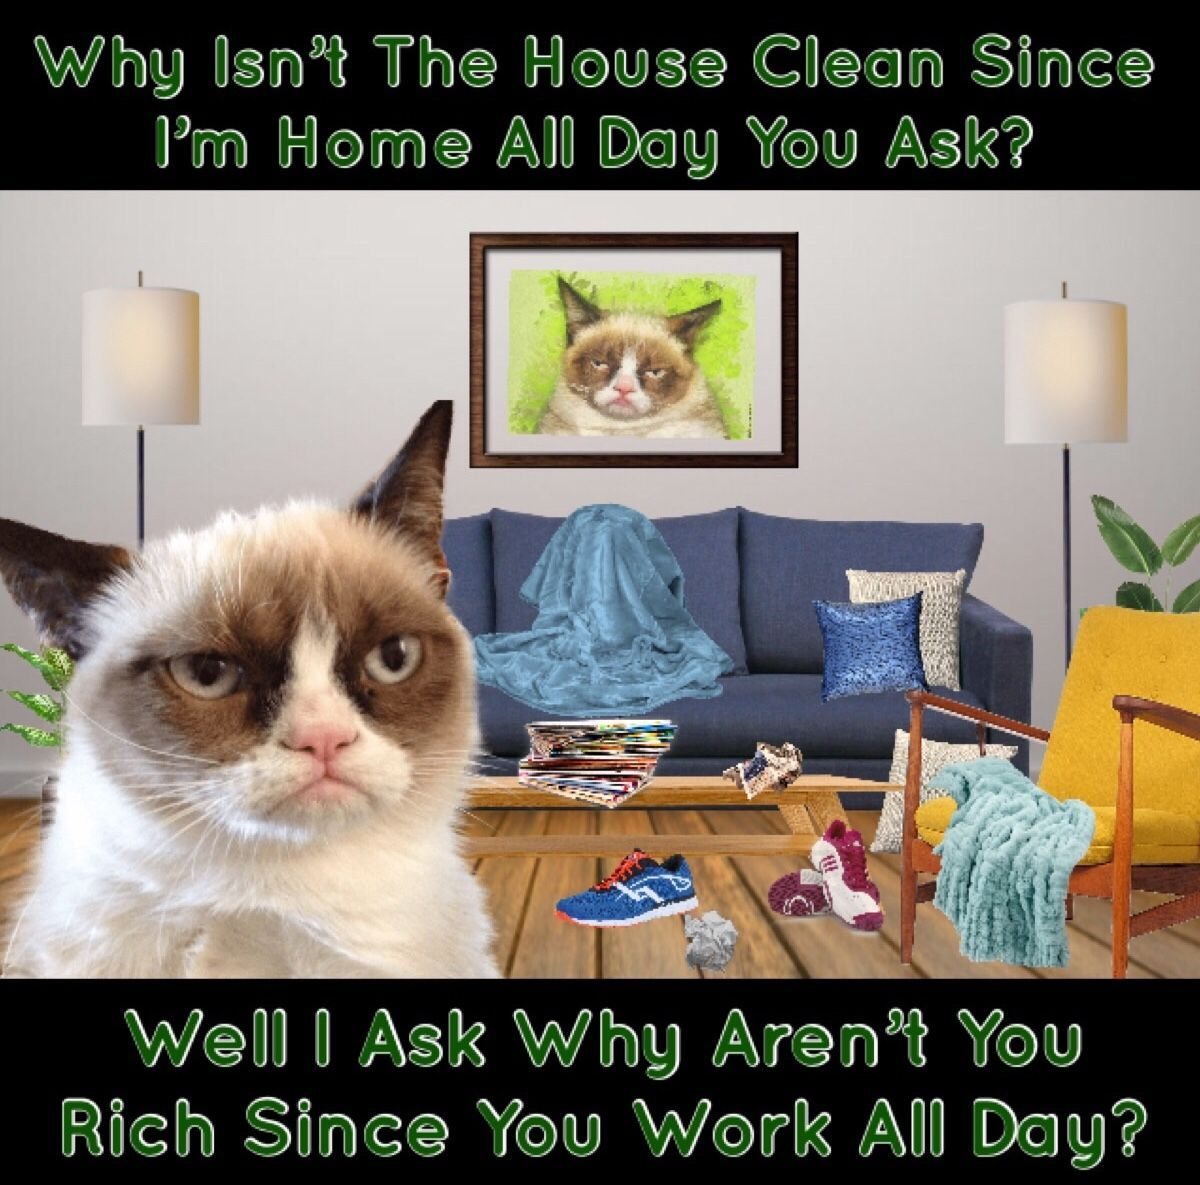 Why Isn't The House Clean Since I'm Home All Day? Grumpy